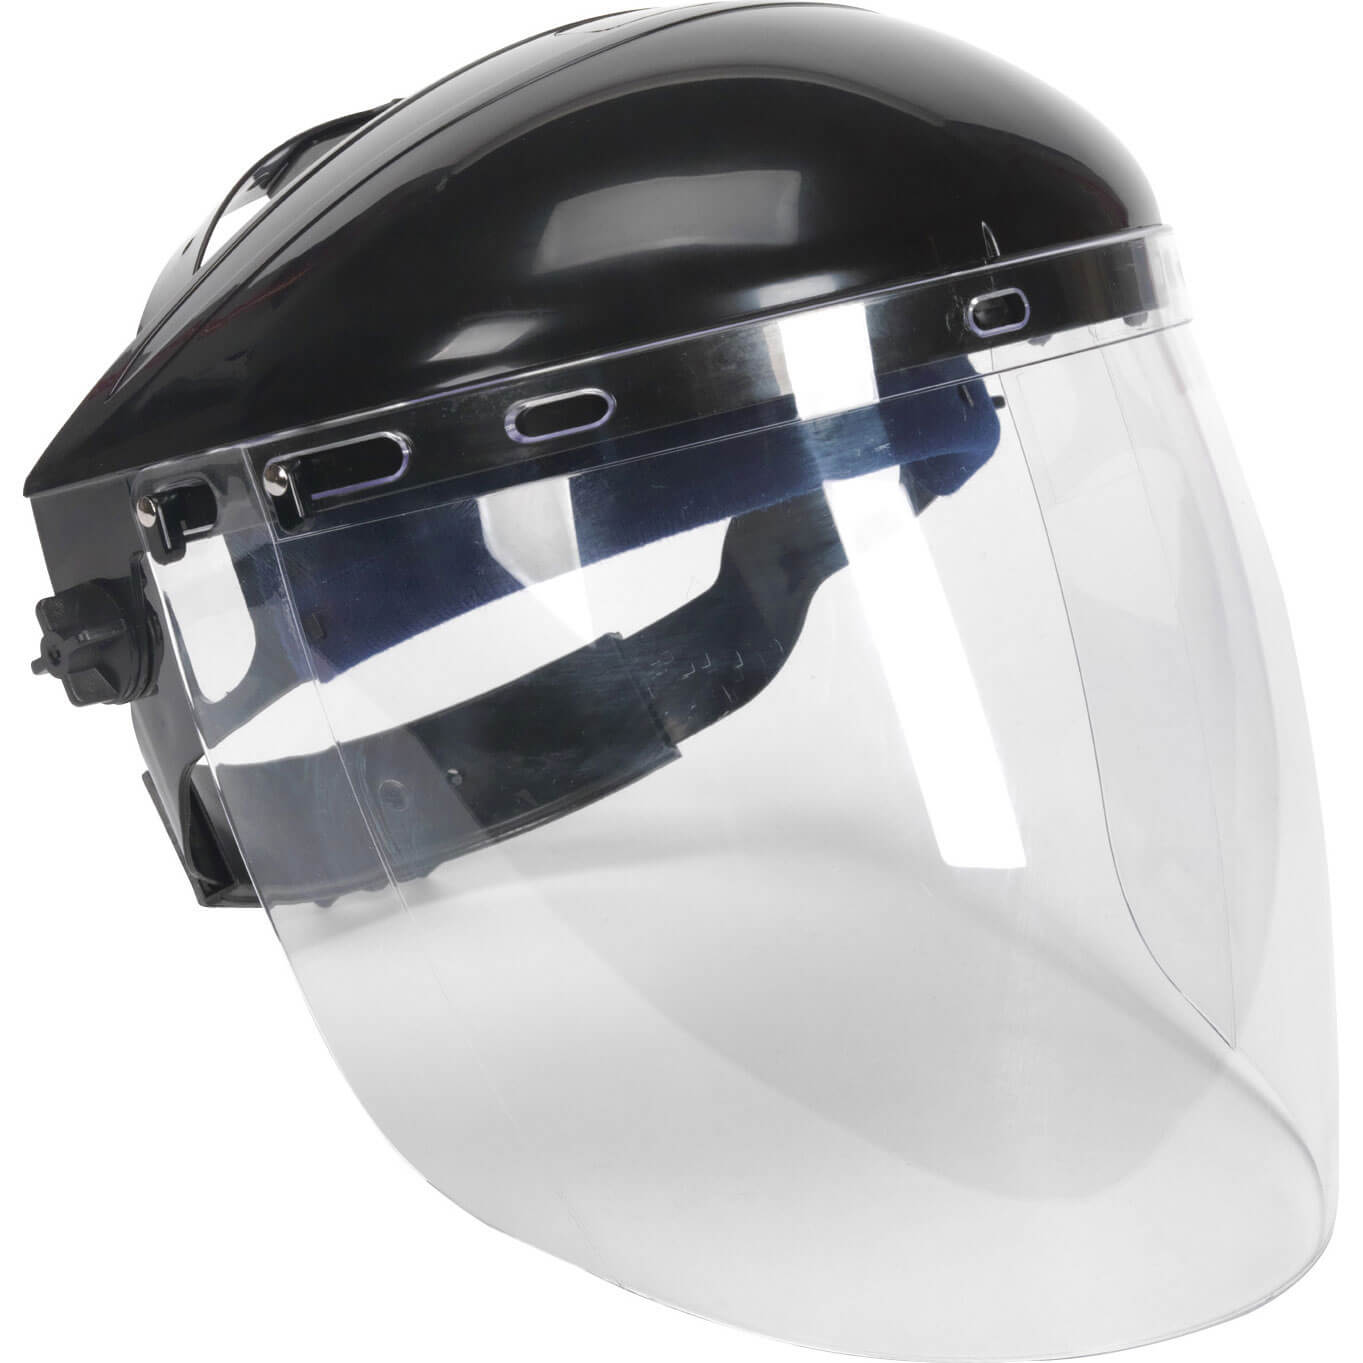 Sealey Deluxe Face Shield  Contoured Safety Visor